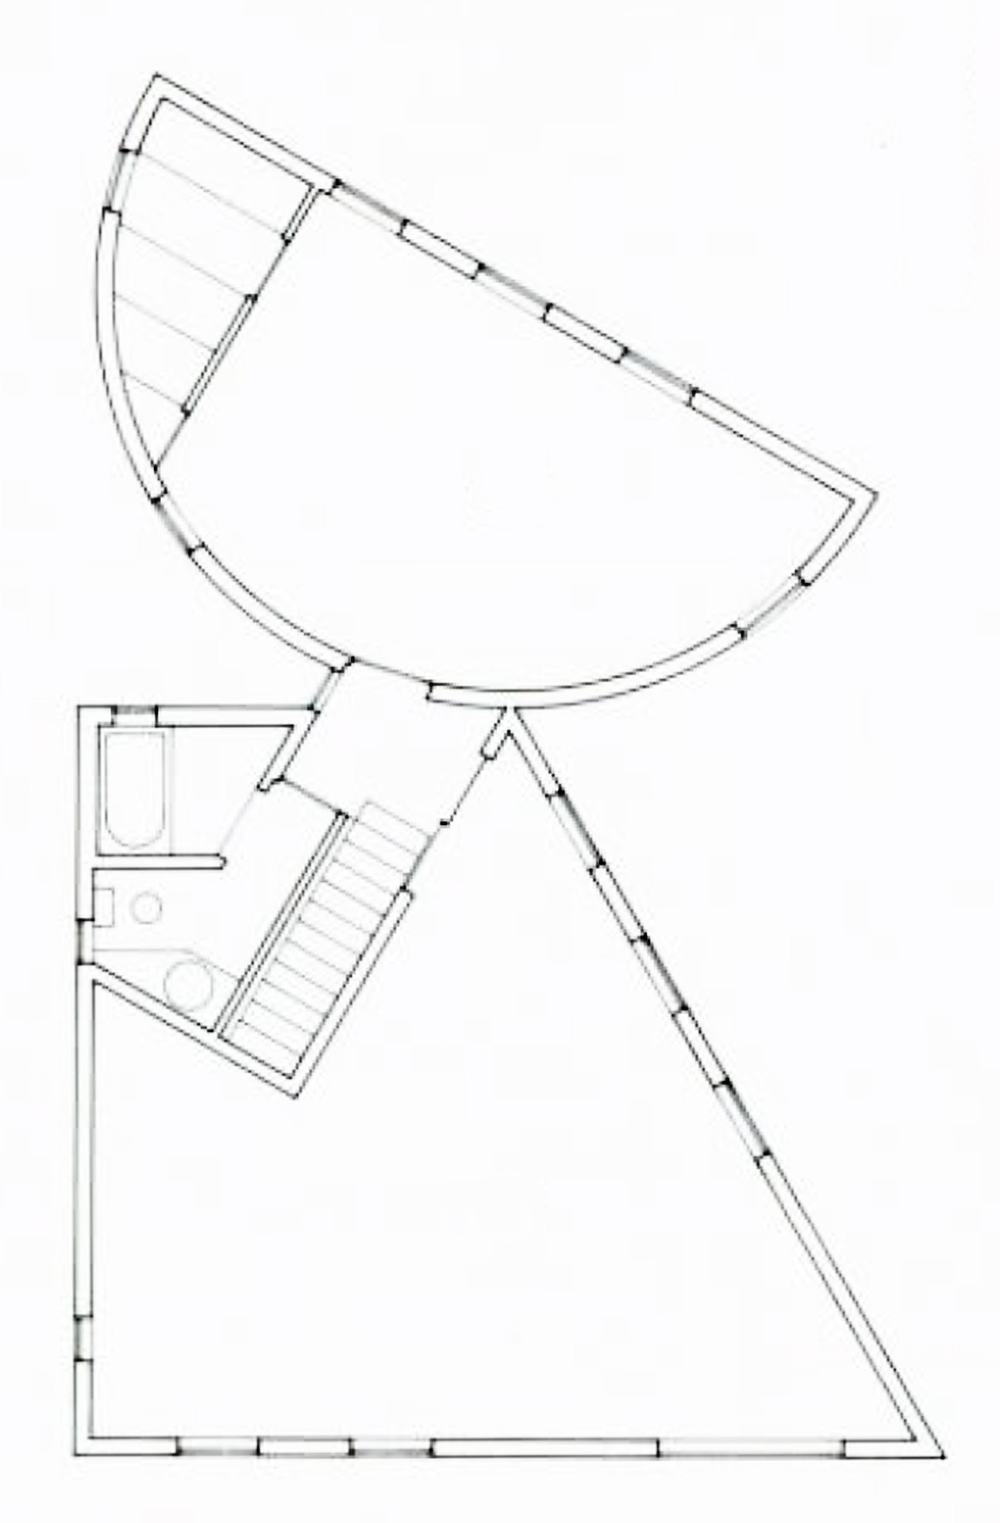 Archive Of Affinities Kazuo Shinohara Tenmei House Plan In 2020 How To Plan Concept Diagram Architecture Drawing